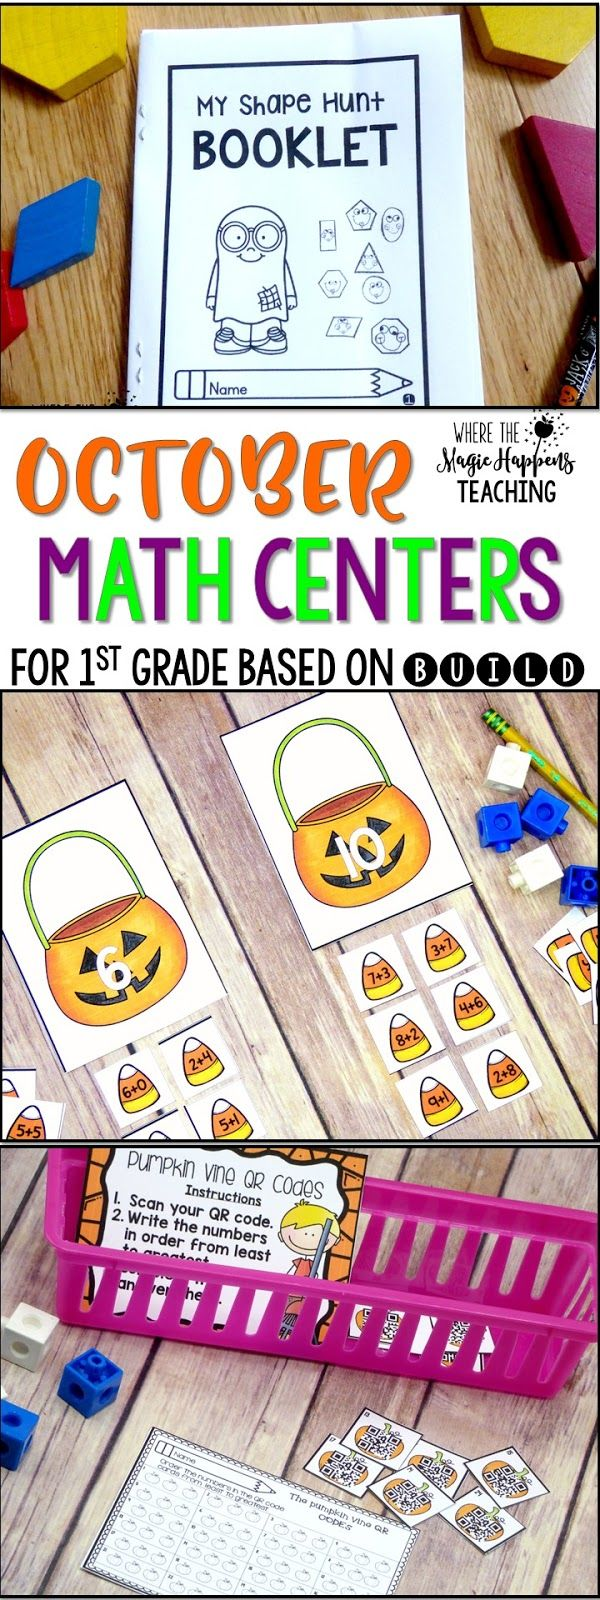 First Grade BUILD Math centers. These October math centers contain grade level practice for the following concepts: place value, geometry, number sense, CGI word problems, addition and subtraction, understanding number bonds, and ten frames, as well as missing number in addition and subtraction situations.